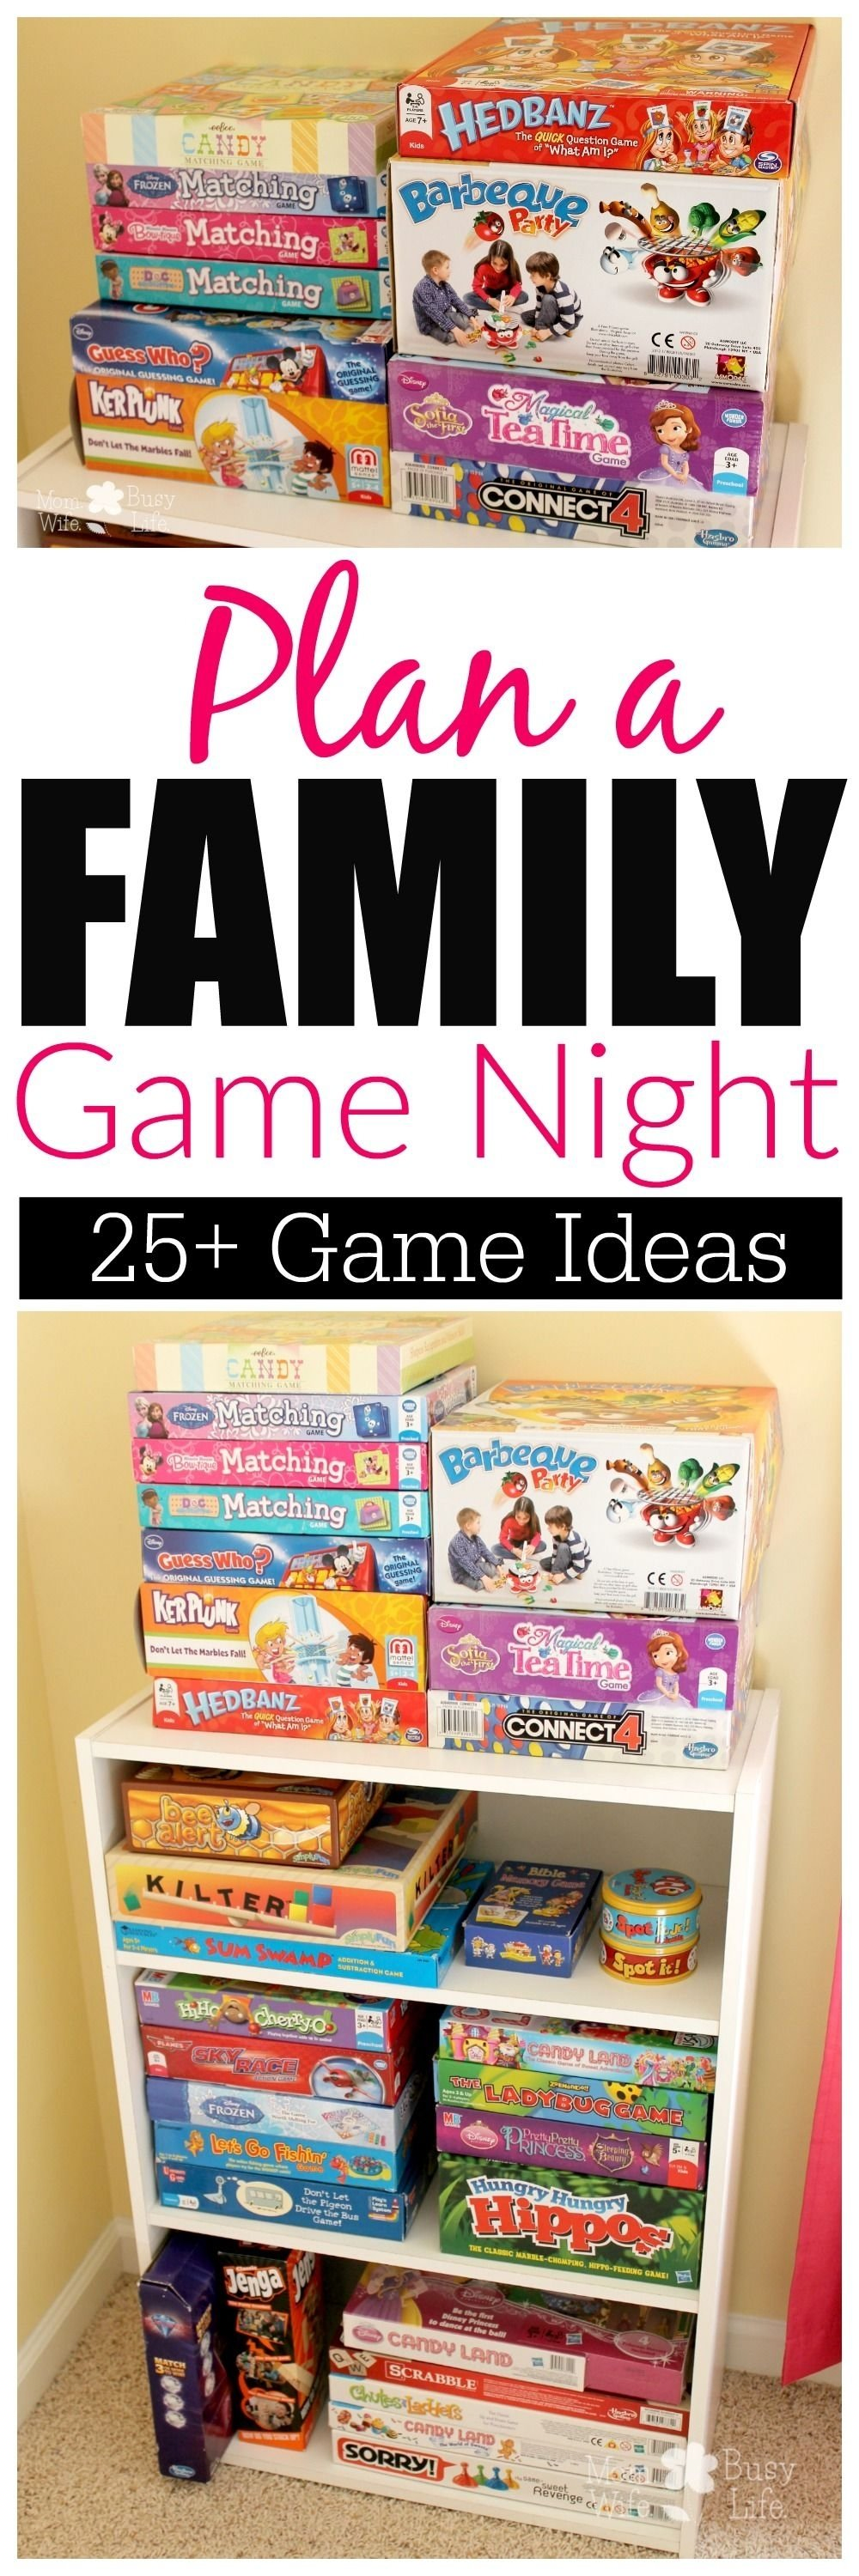 10 Attractive Ideas For Family Game Night the importance of family game nights 2021